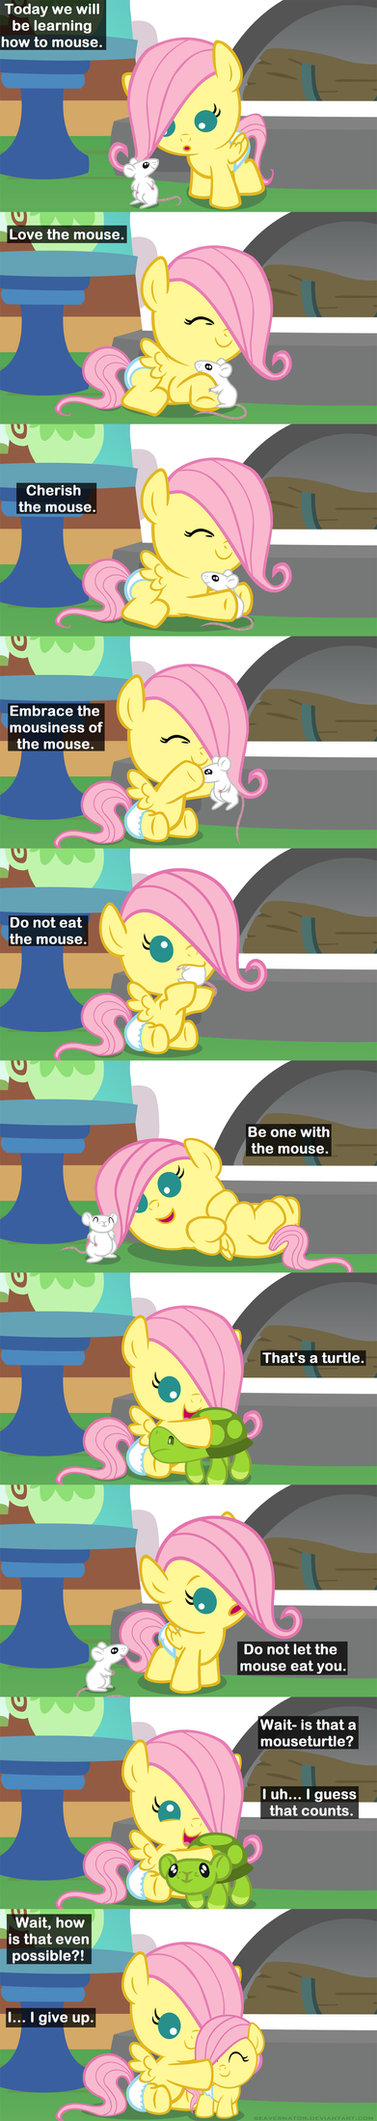 How To Mouse by Beavernator